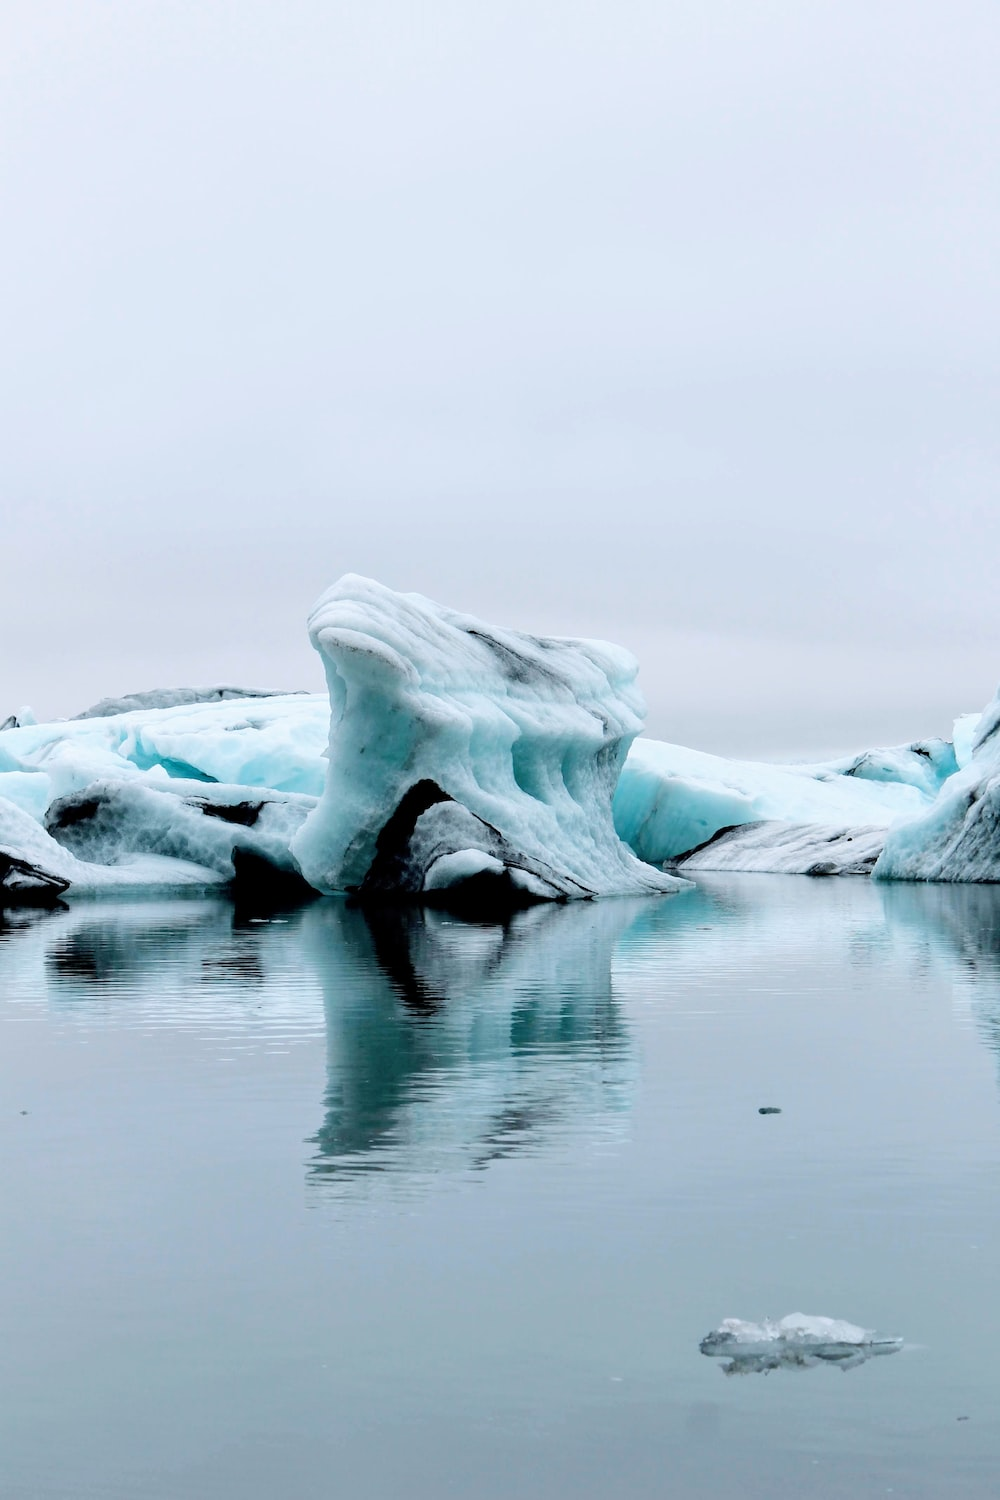 ice formation on water during daytime